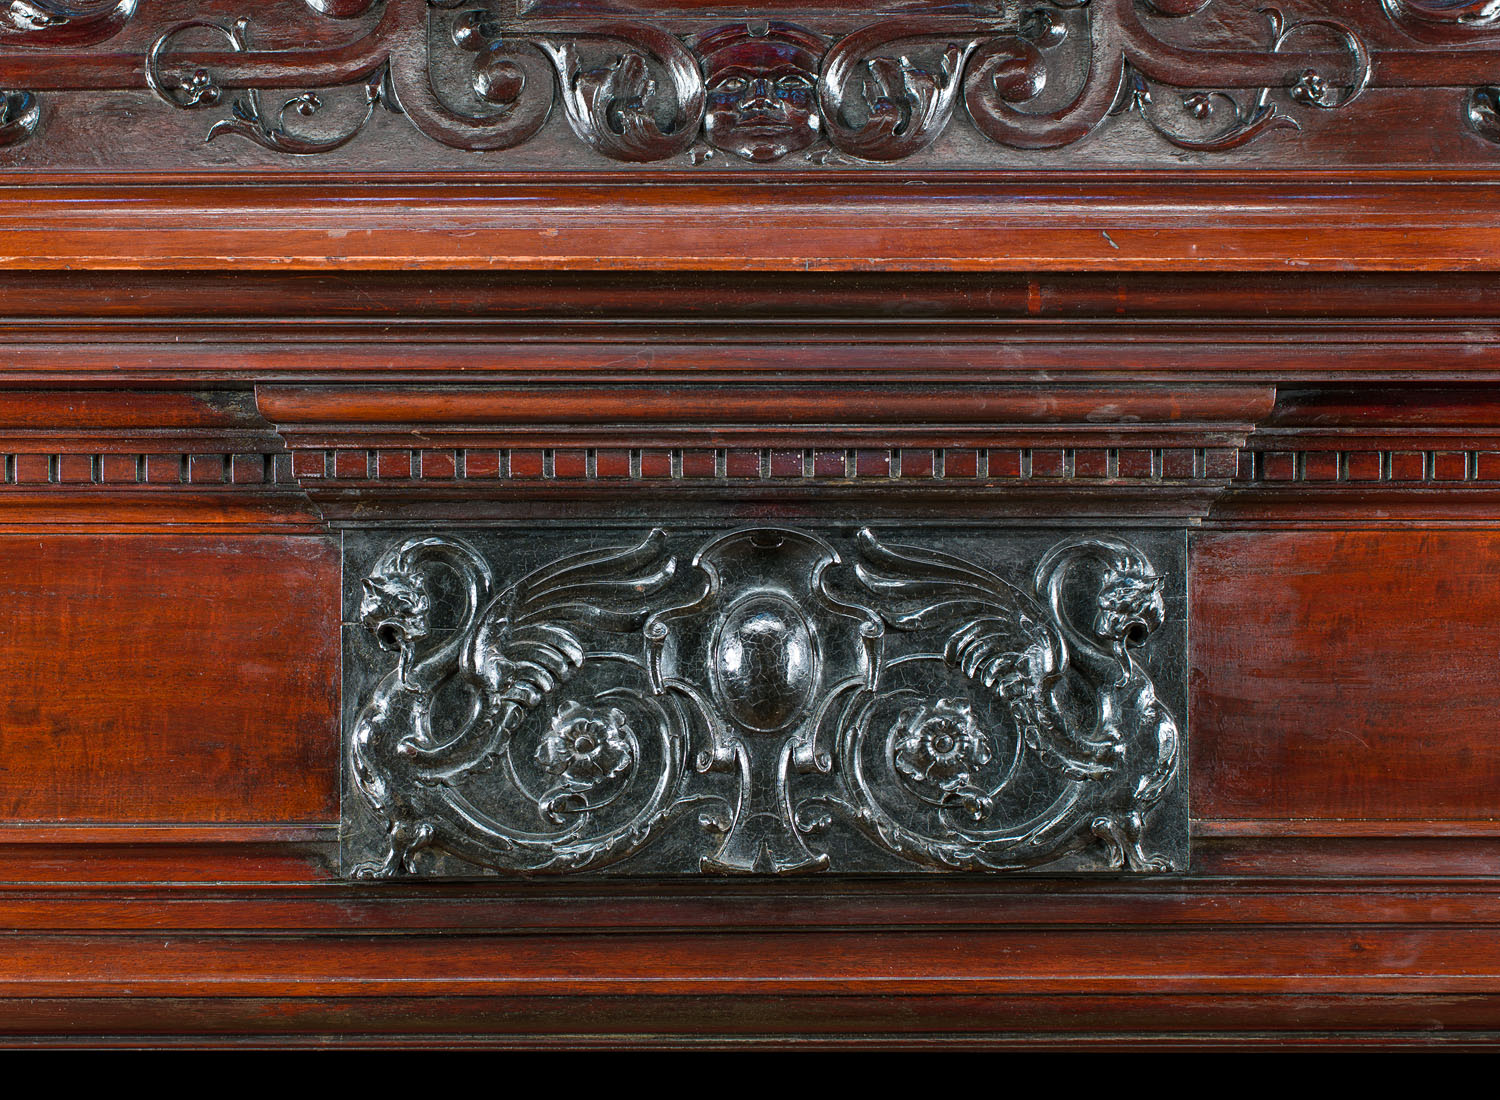 A Baroque style mahogany fireplace and overmantel.